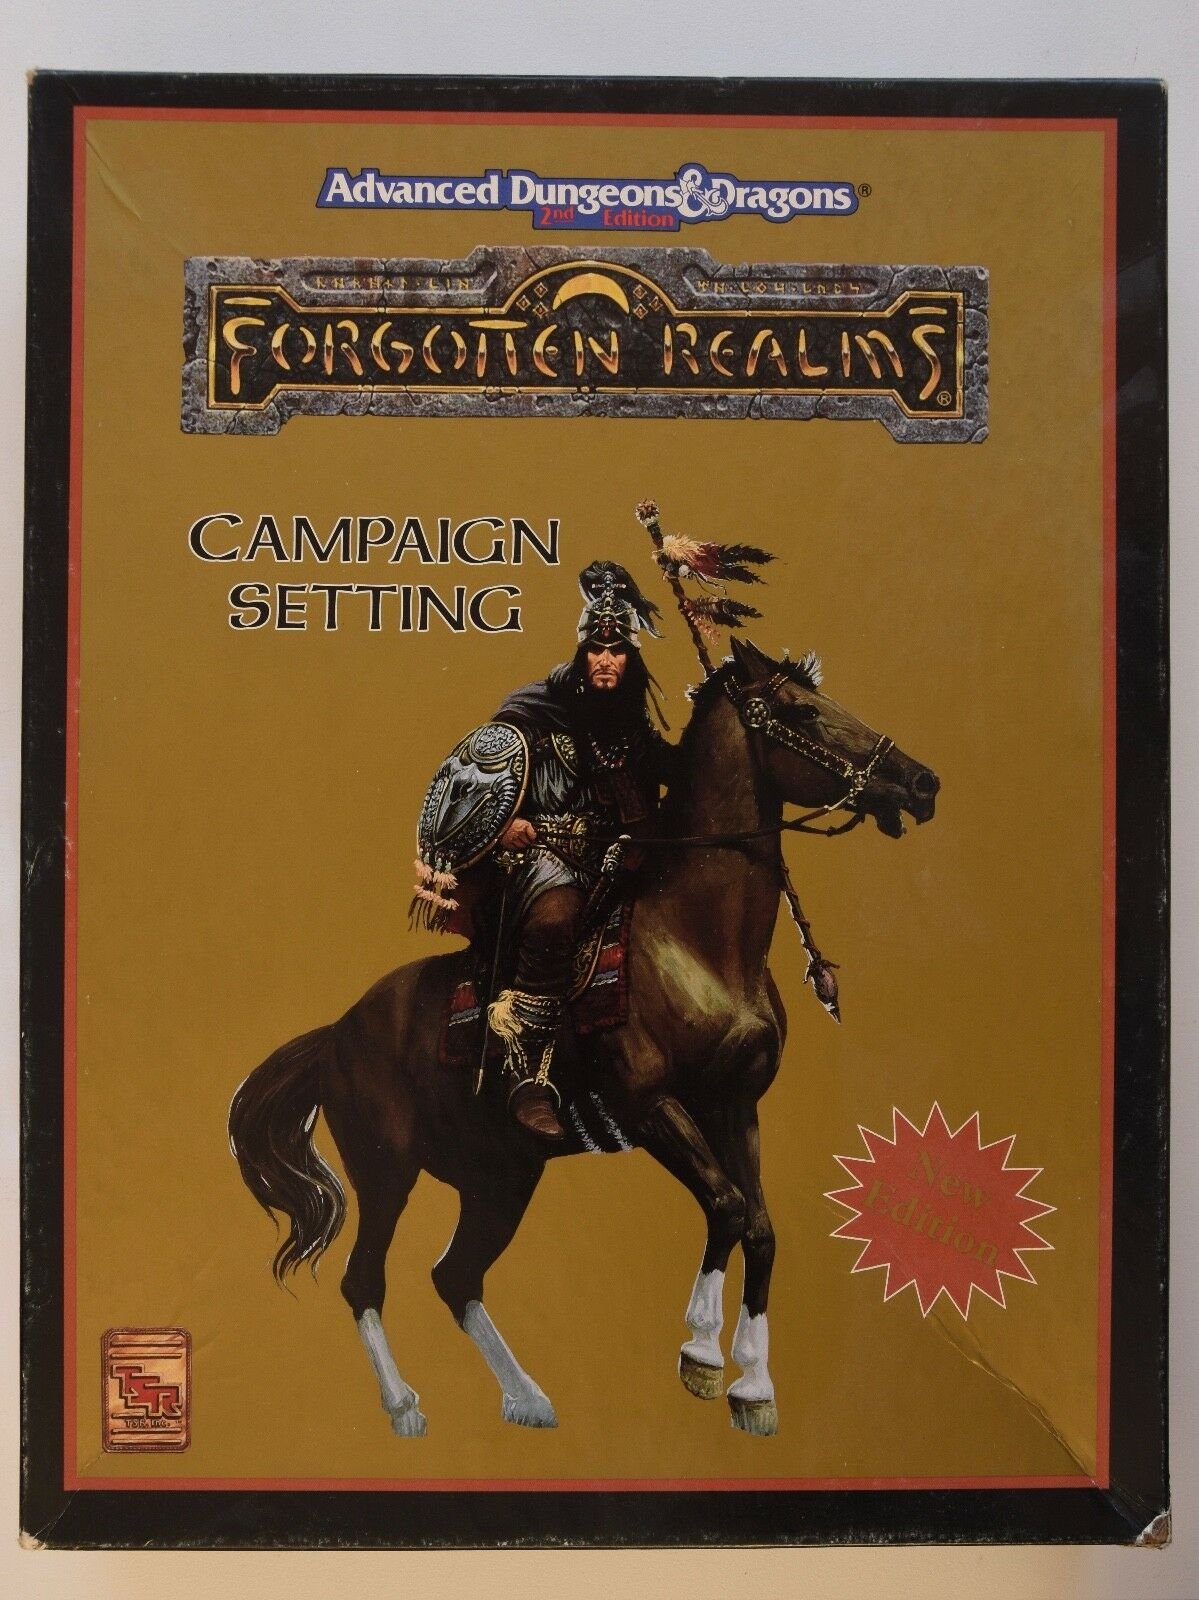 AD &D - CAMPAIGN SETTING - Forget Realms låda Set - Dungeons and drakes - 2 ed